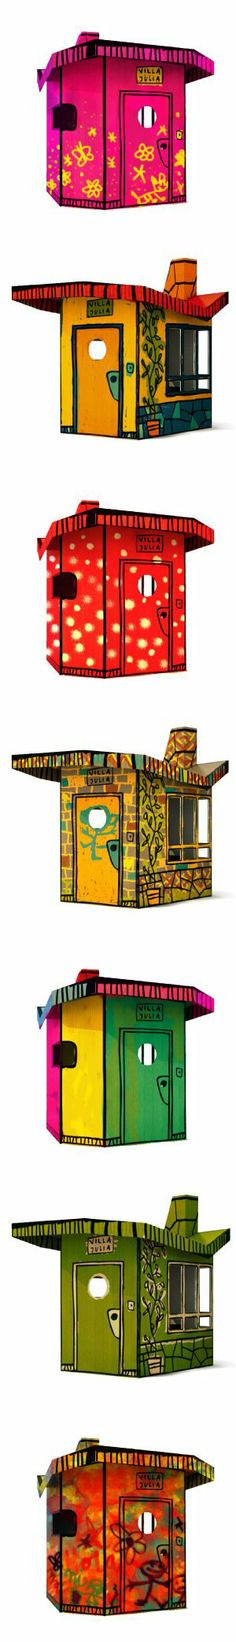 Casa Julia (2009): a cartoonish cardboard playhouse that children could set up themselves, move wherever they pleased, and individualize by coloring between -or outside- the lines. by Javier Mariscal